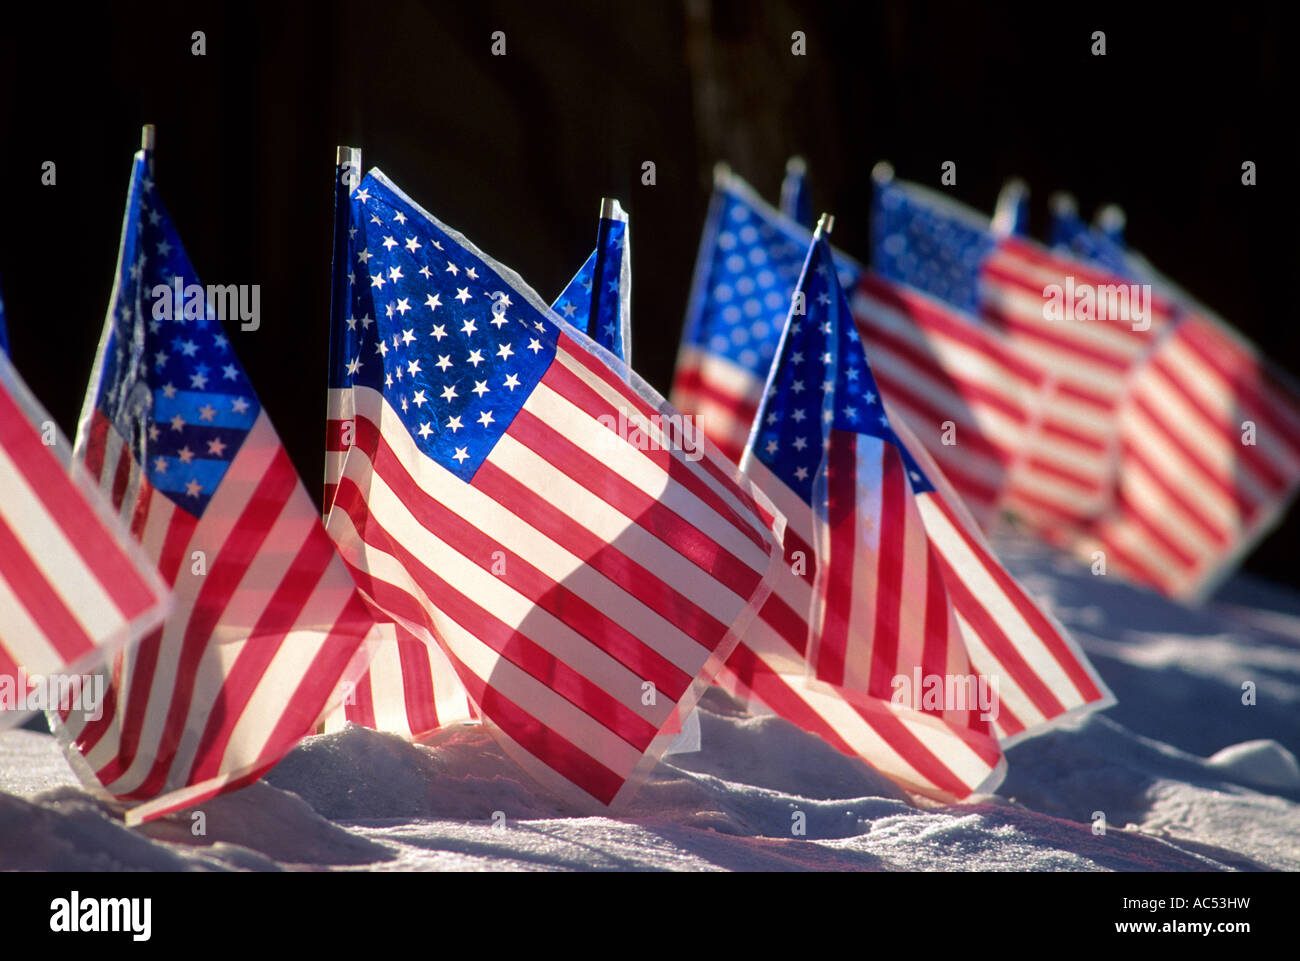 AMERICAN FLAGS IN THE SNOWY FRONT YARD OF A MINNESOTA HOME. WINTER. - Stock Image